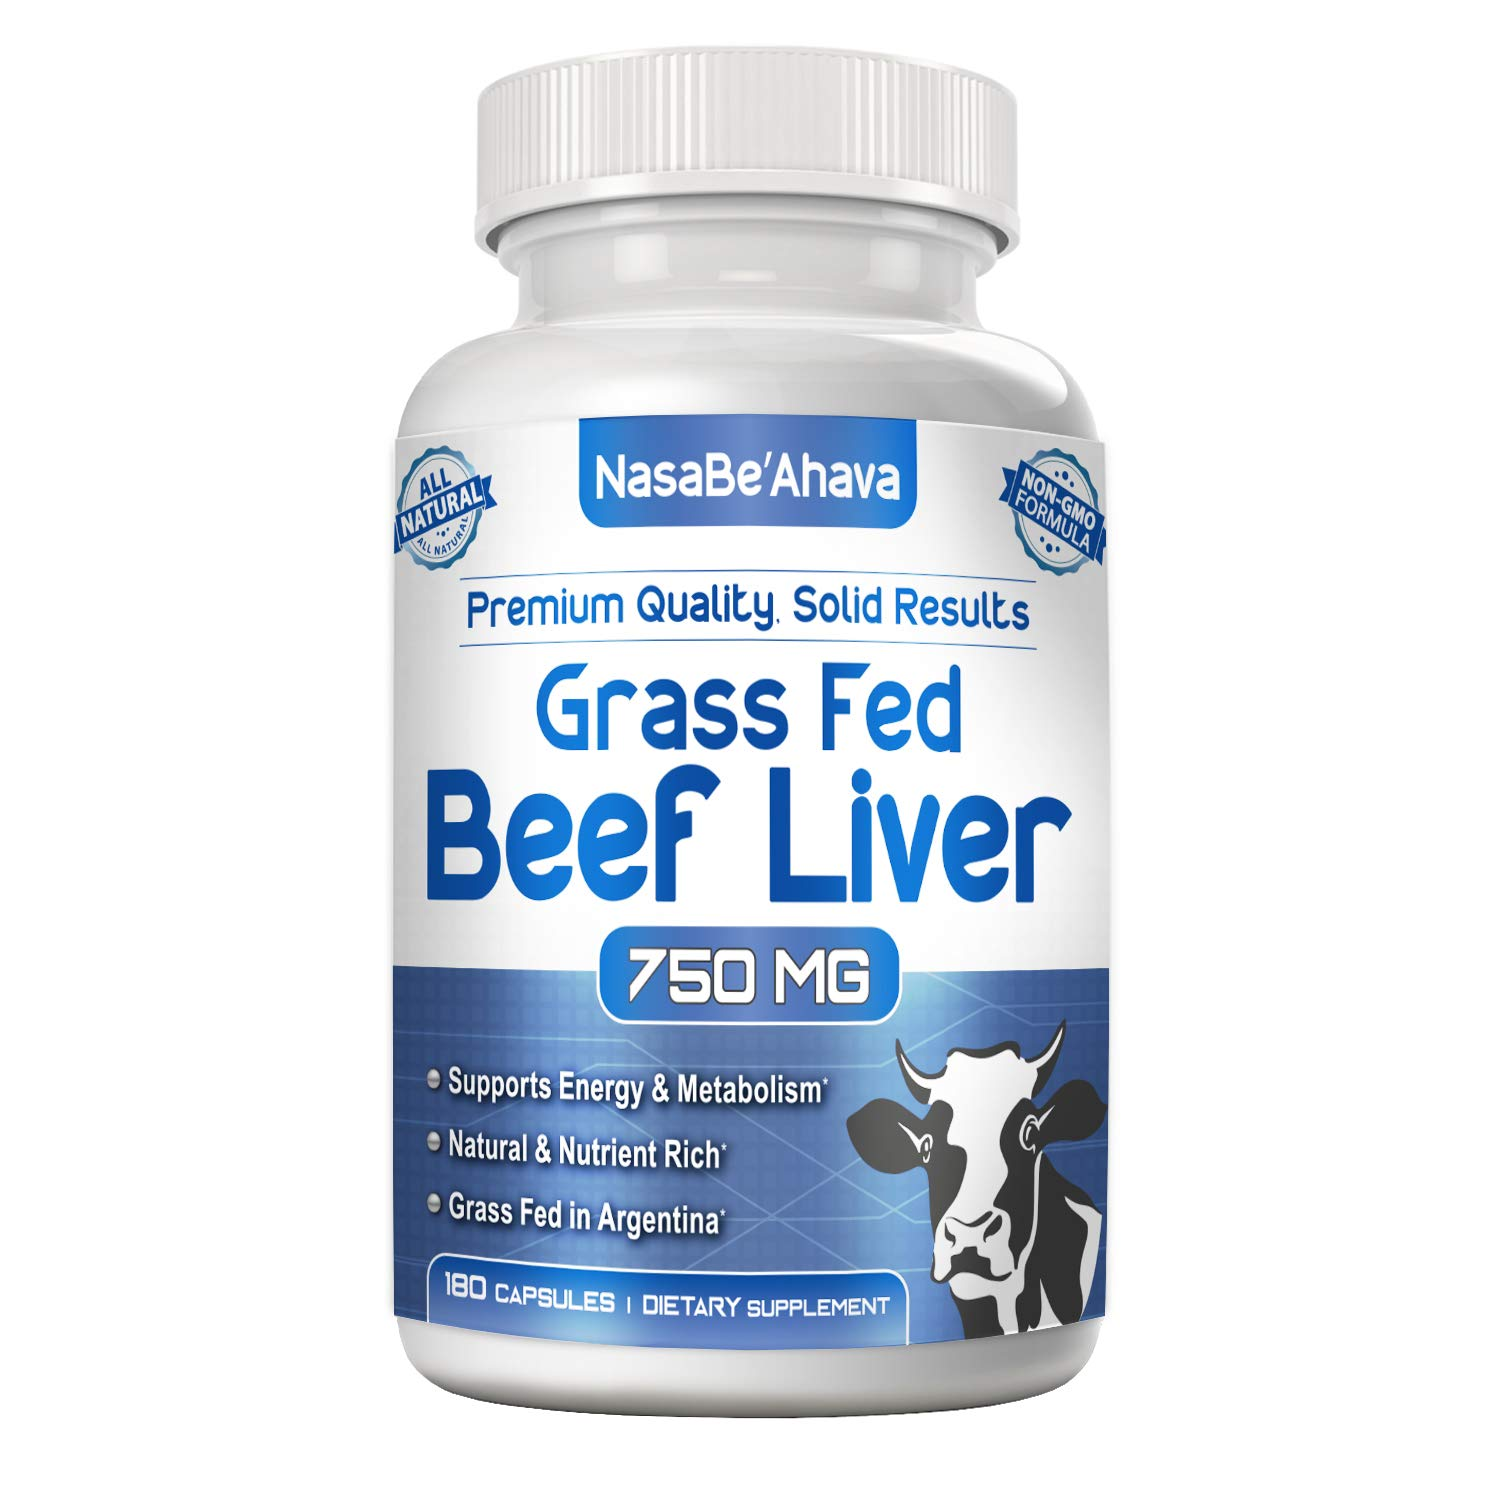 NASA Beahava Grass Fed Beef Liver (Desiccated) - 180 Capsules - Argentine Pasture-Raised Beef Liver Pills - 3000mg Supplement Powder Per Serving - Natural Iron, B12, Vitamin A for Energy - Non-GMO by NasaBeahava